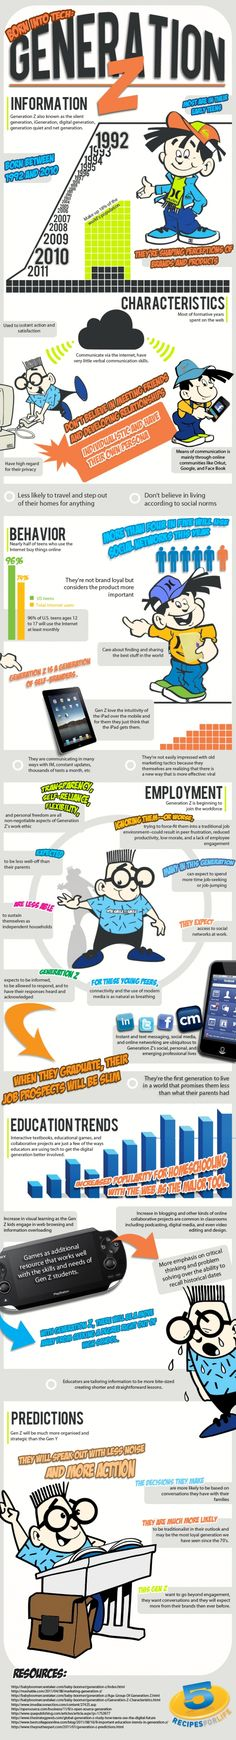 48 10 Scary HR Stats That\u0027ll Make You Howl This Halloween Skeletons